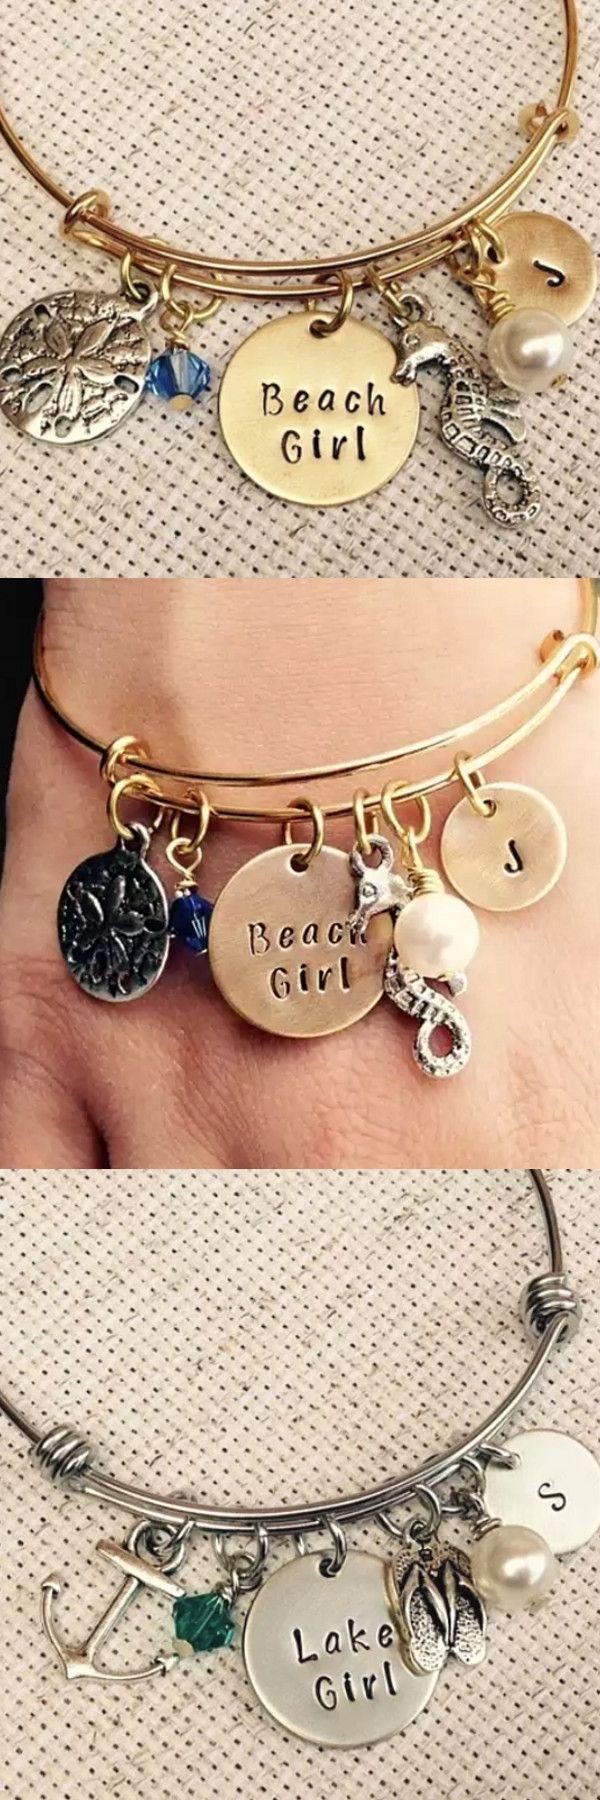 Choose between Beach Girl, Mermaid Soul, Lake Girl or Gypsy Soul. Stainless steel bangle, made to order. Each bracelet comes with charms that are applicable to the saying you choose. These charms are made from a zinc alloy metal which is lead and nickel free.